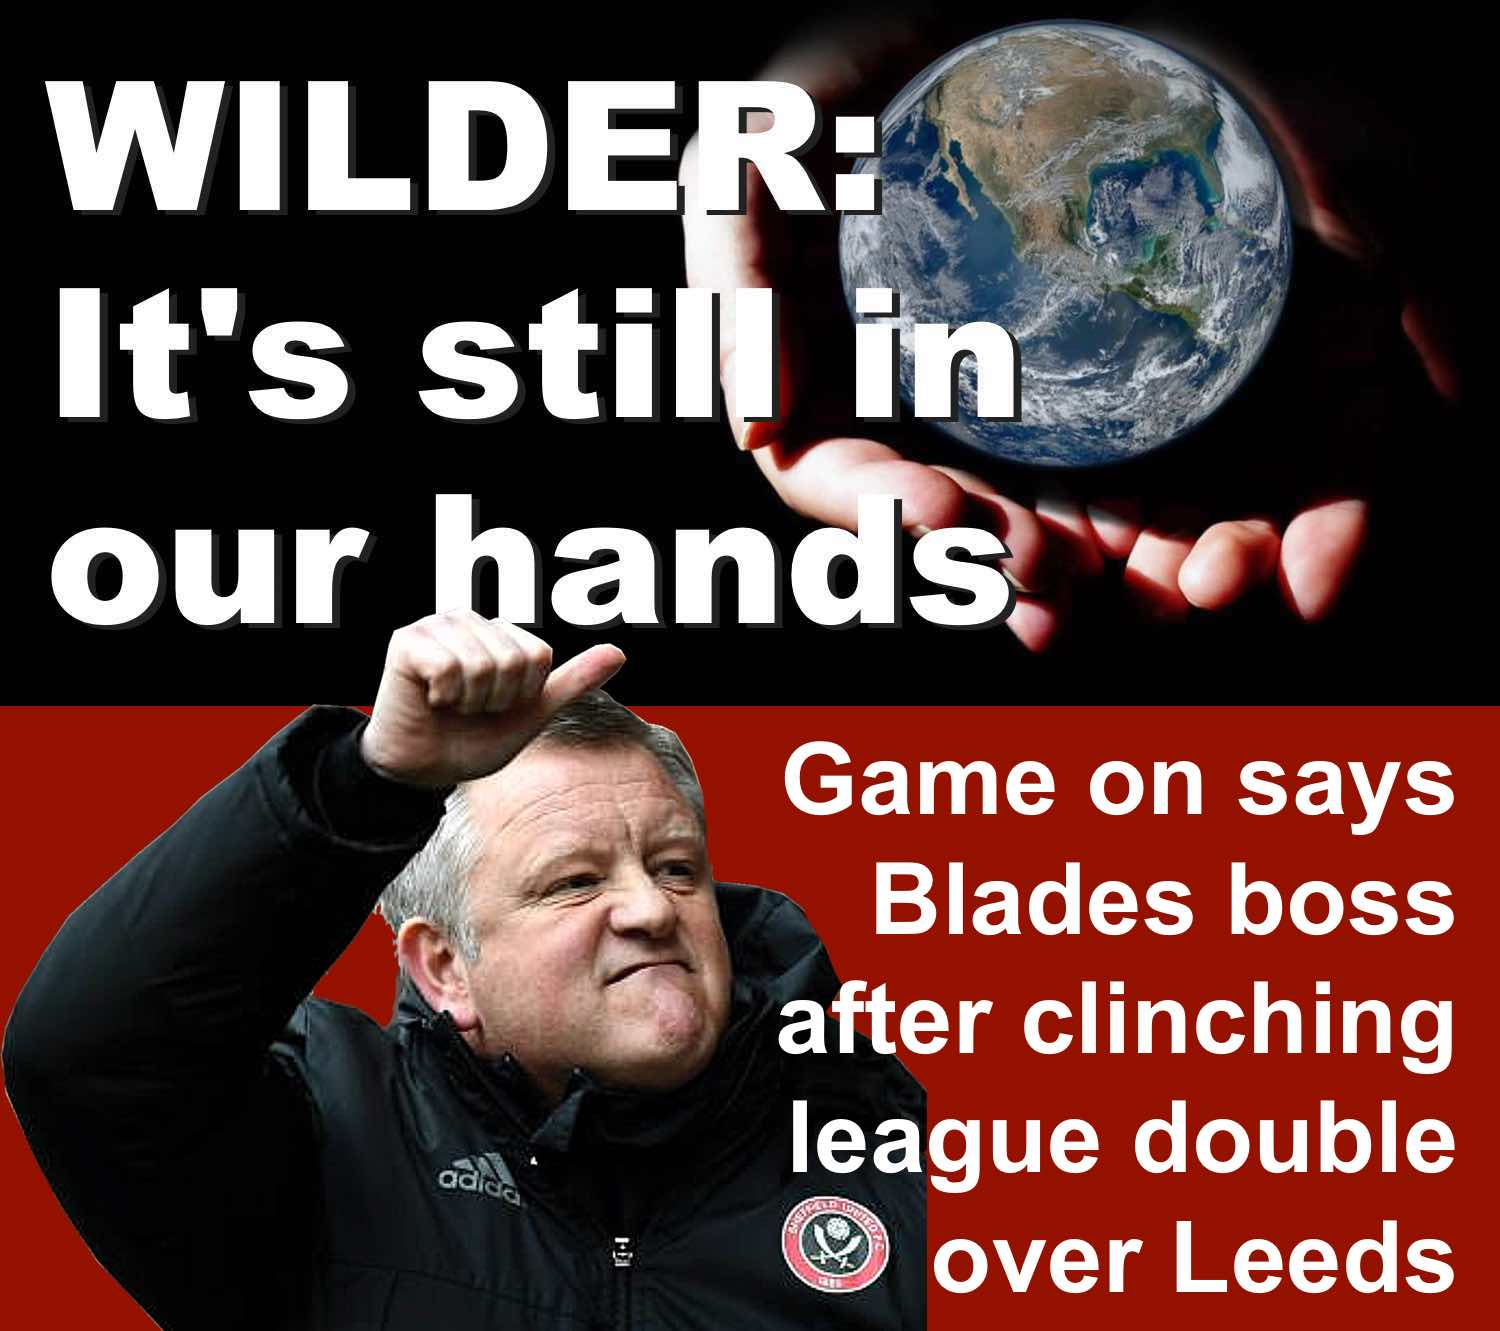 Sheffield United boss Chris Wilder remains confident Blades promotion bid is still on after Bramall Lane victory against faltering Leeds